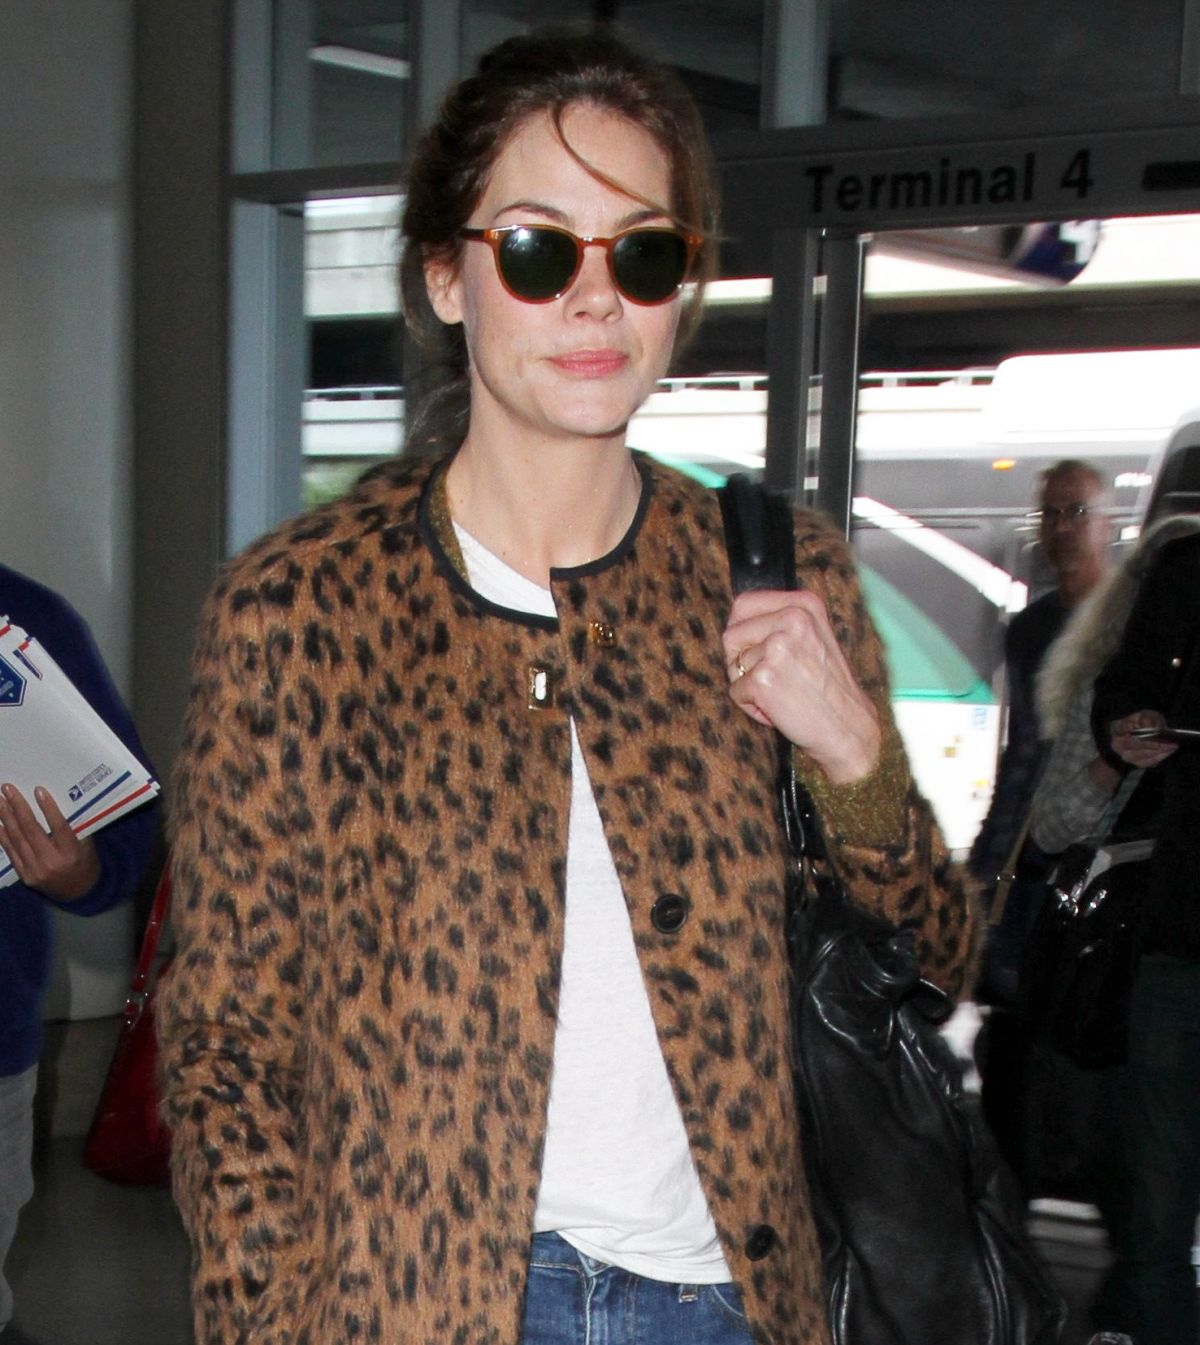 Michelle Monaghan At LAX